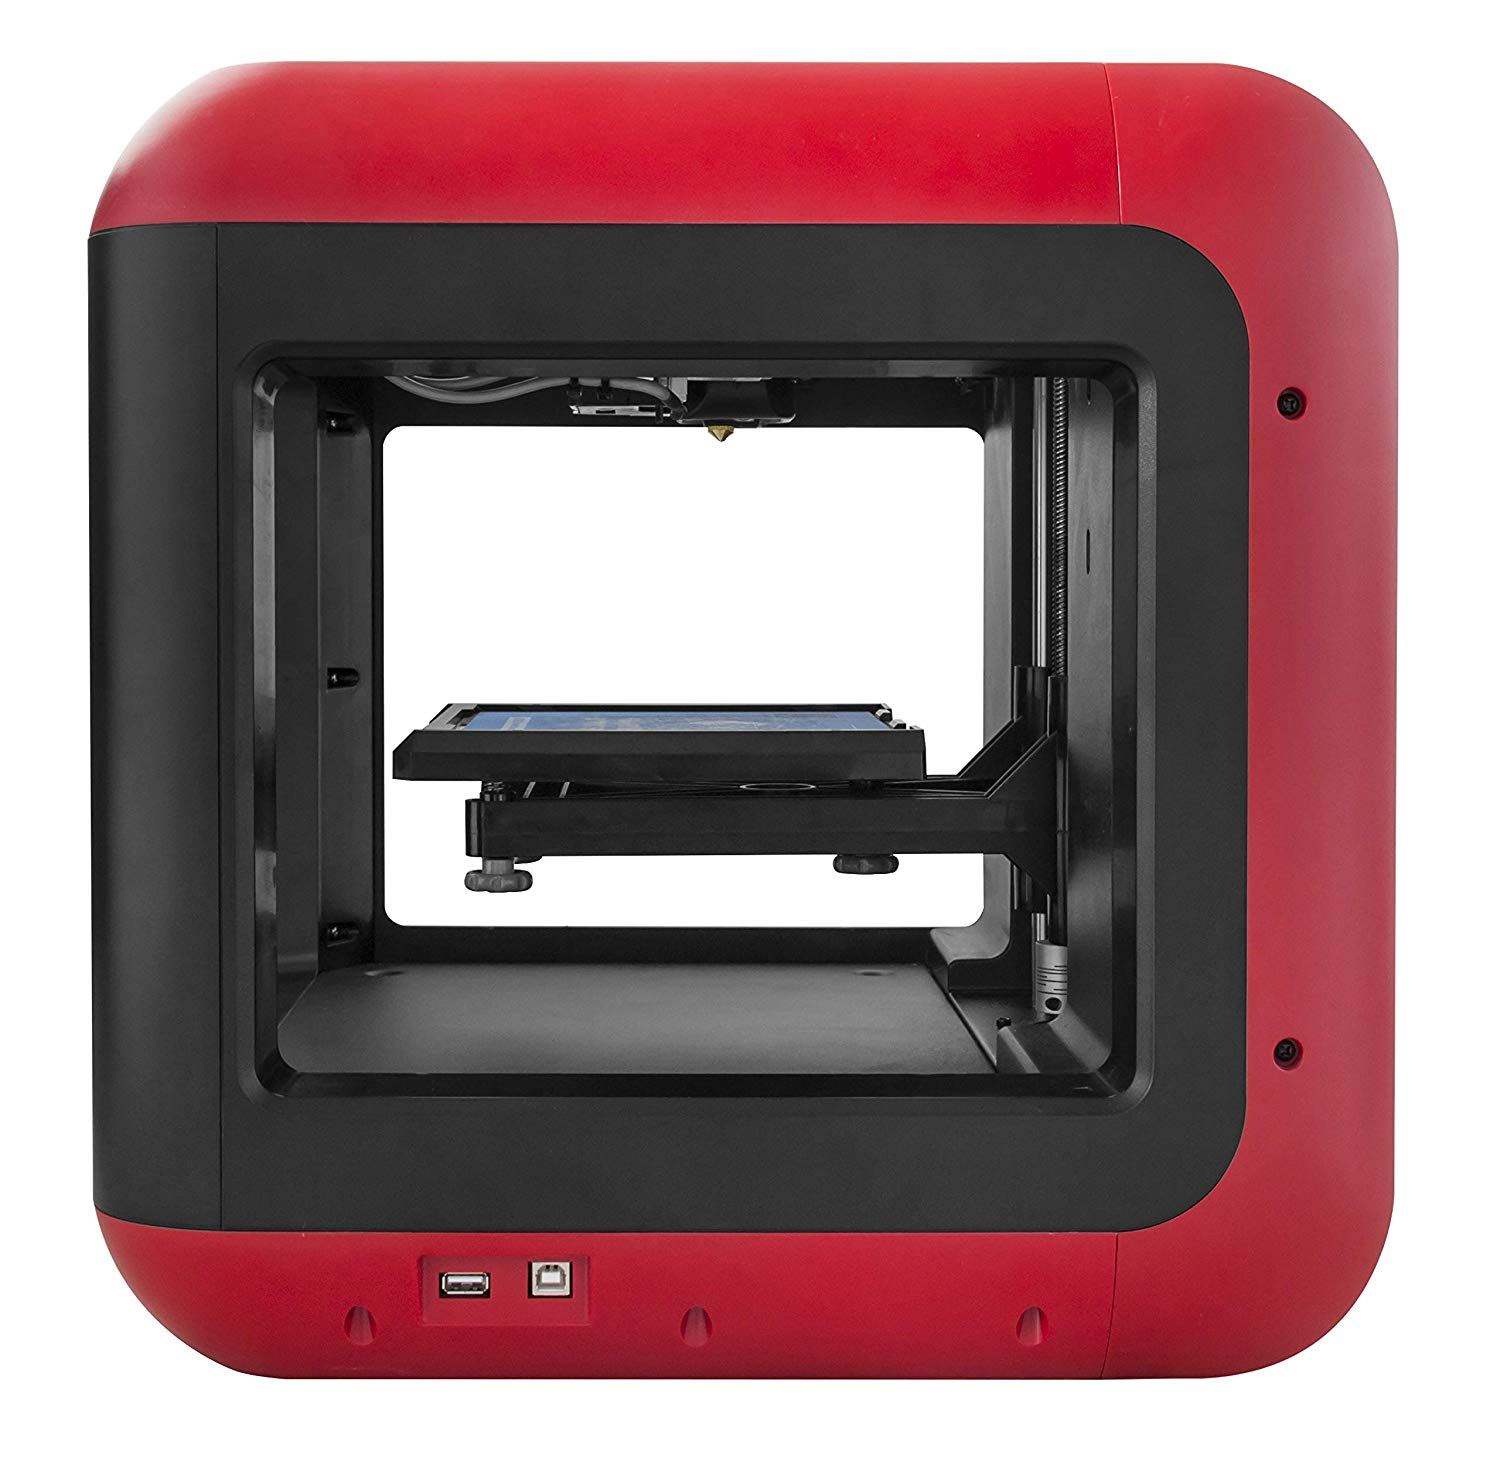 Review of FlashForge Finder 3D Printers with Cloud, Wi-Fi, USB cable and Flash drive connectivity